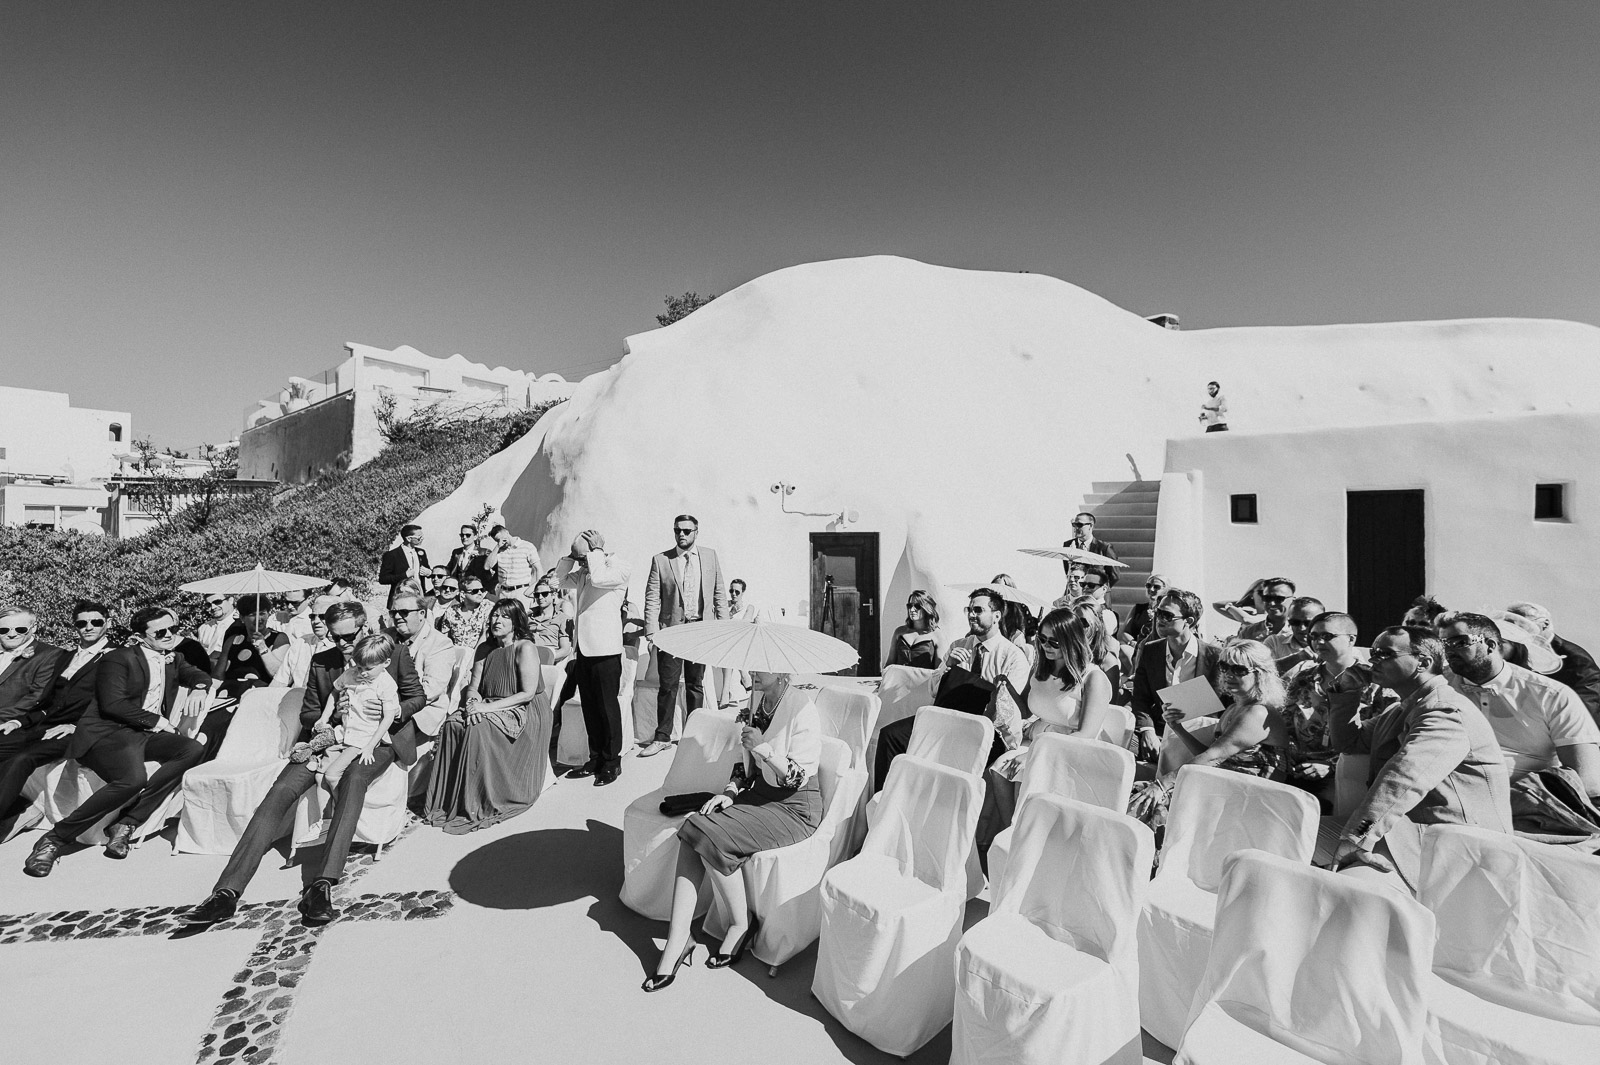 Santorini-Wedding-Photographer-Greece-Destination-Weddings-Mait-Juriado-M&J-Studios-049